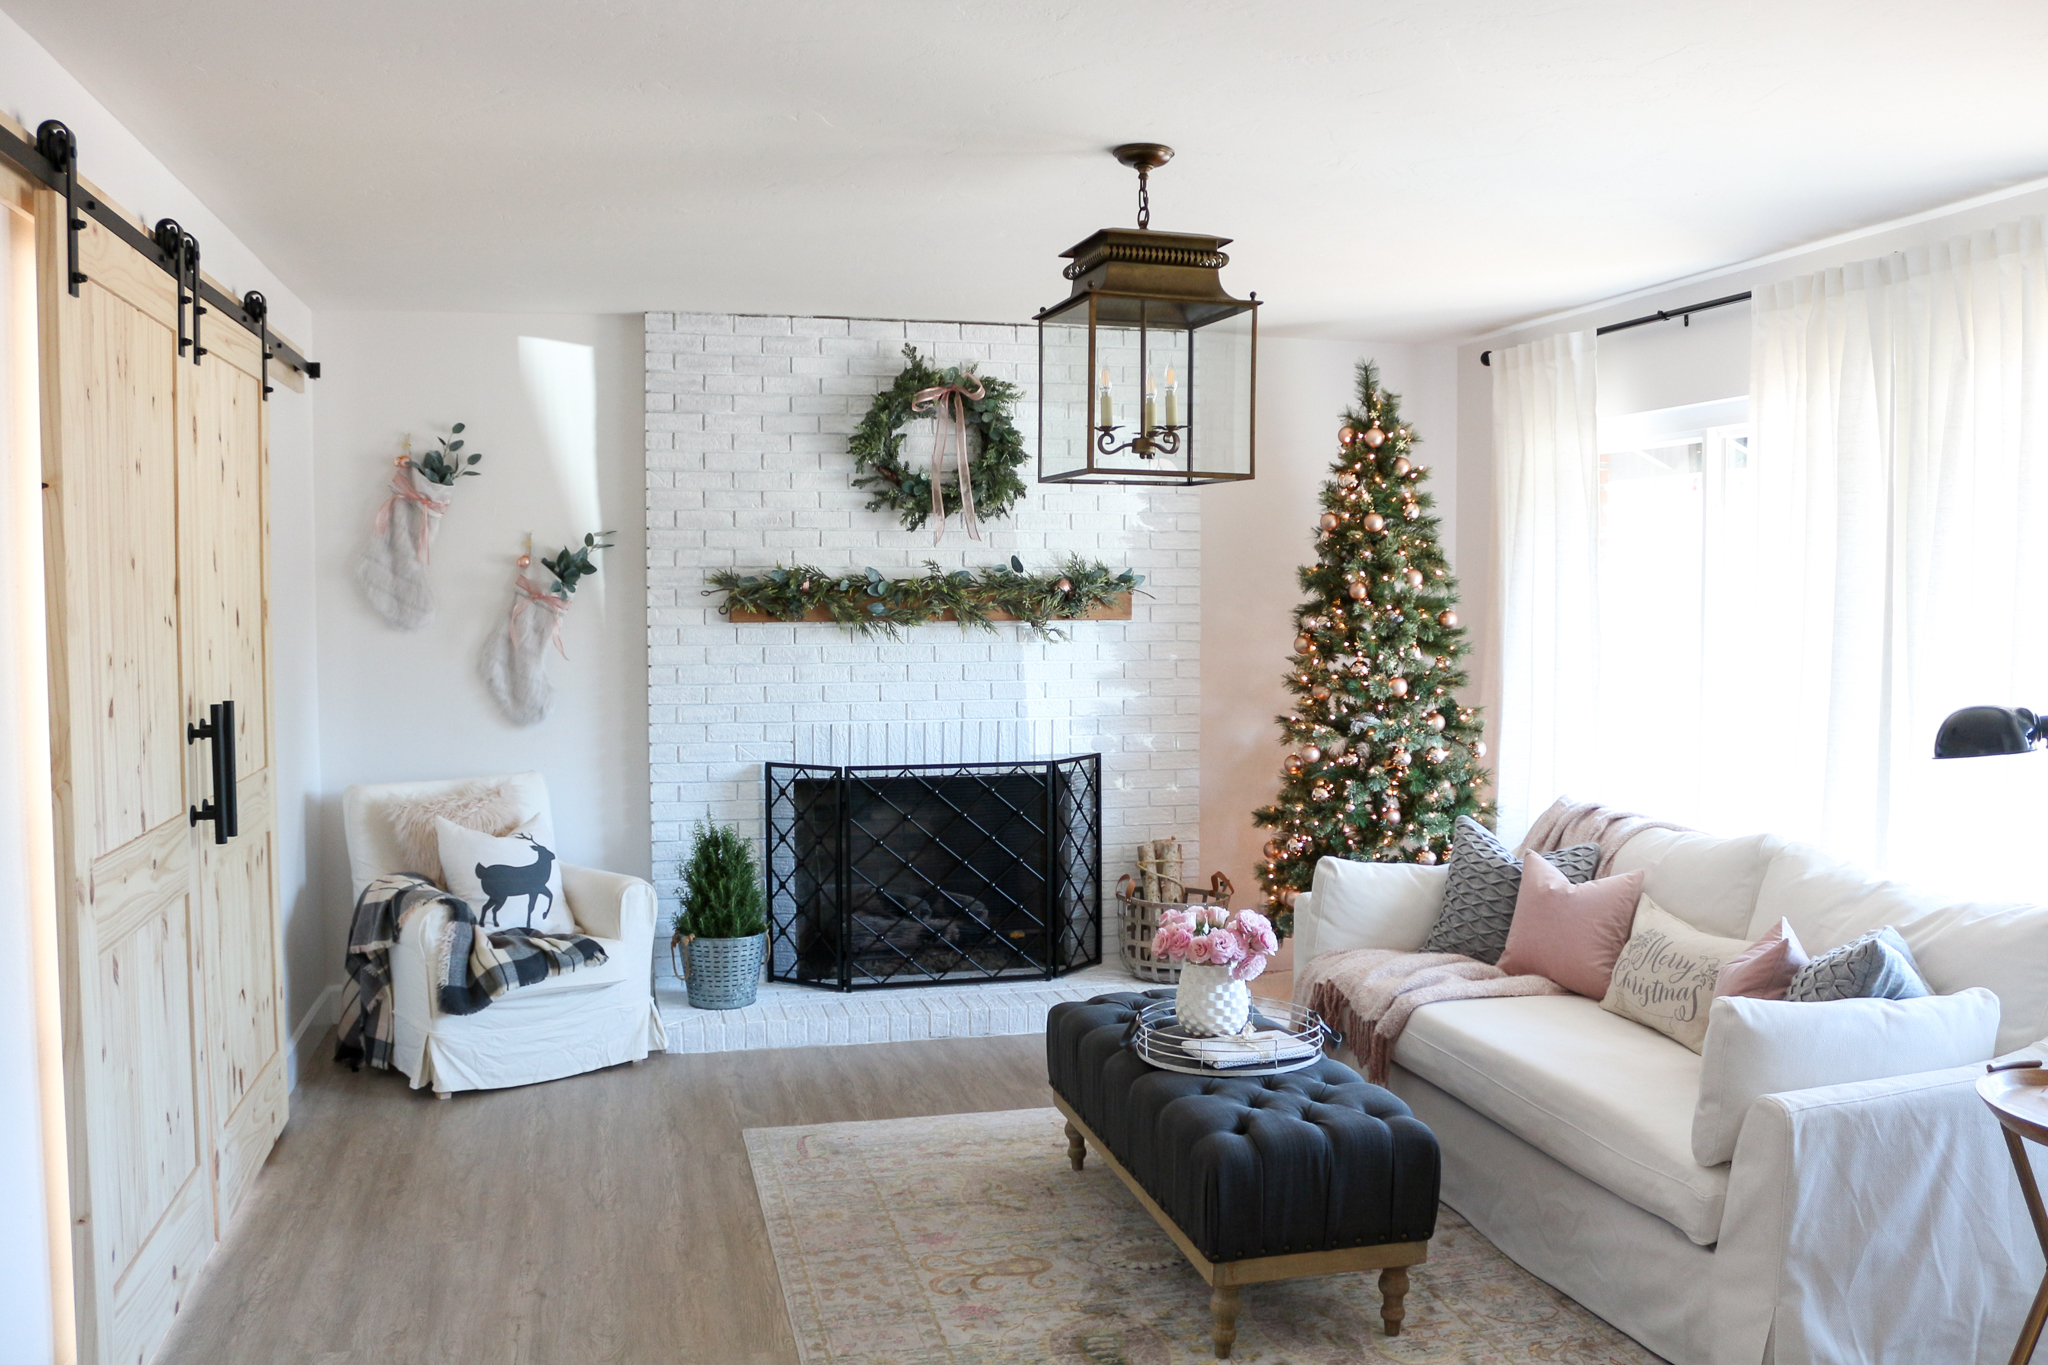 Find the best living room paint colors right here, from calming living room paint colors to small living room paint colors and more, in all price points. Modern Farmhouse Style Living Room Holiday Tour